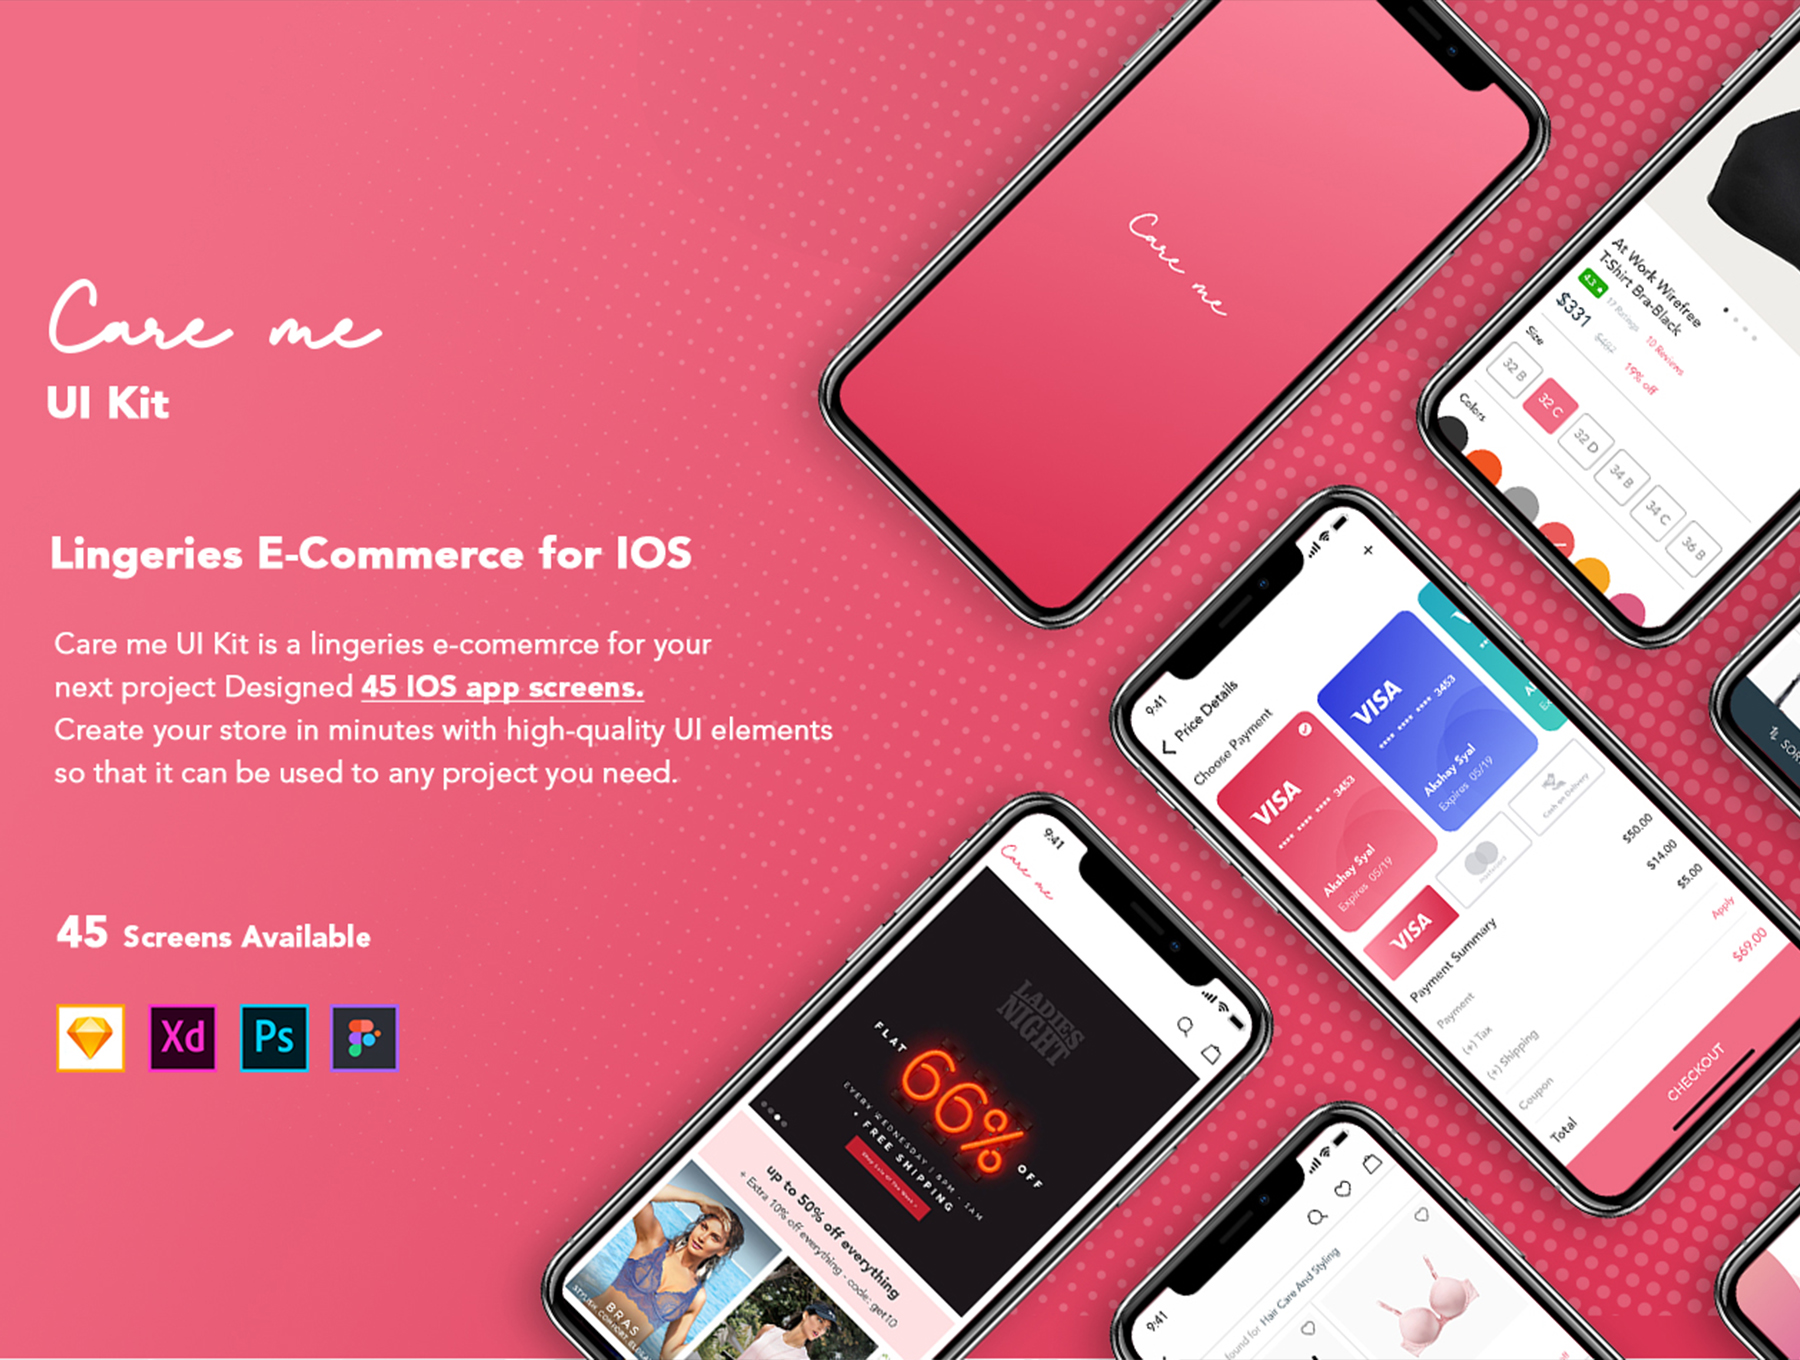 完美的时尚电商APP UI KIT套装下载[Sketch,XD,PSD,Fig] Care me Lingeries Ecommerce UI Kit